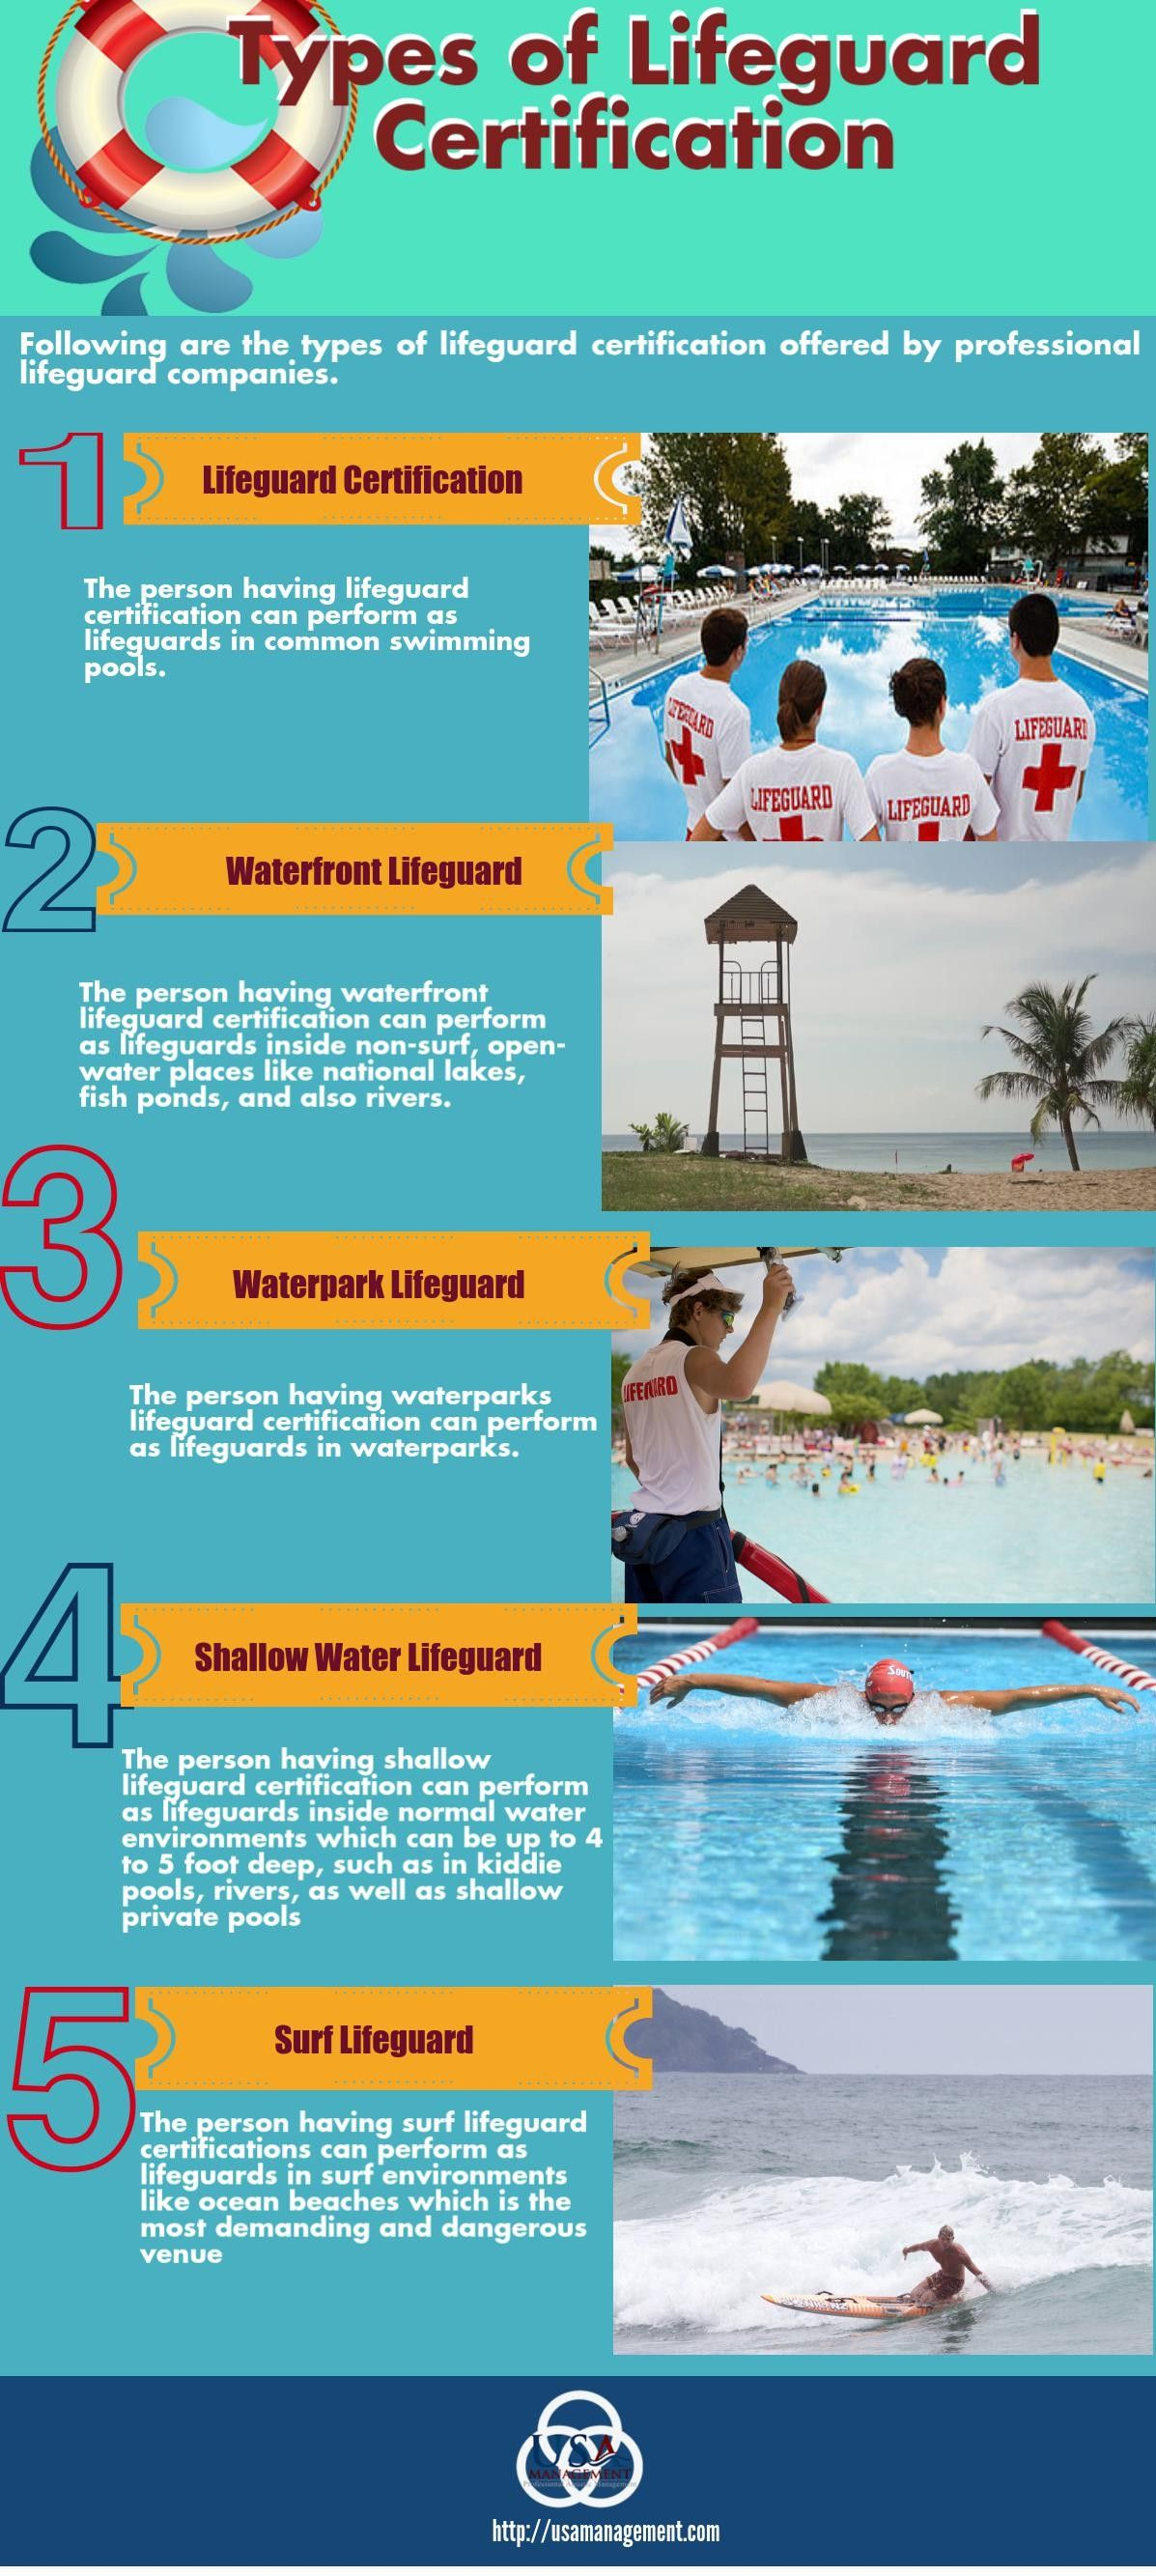 If you want to make career in lifeguardning take a look on